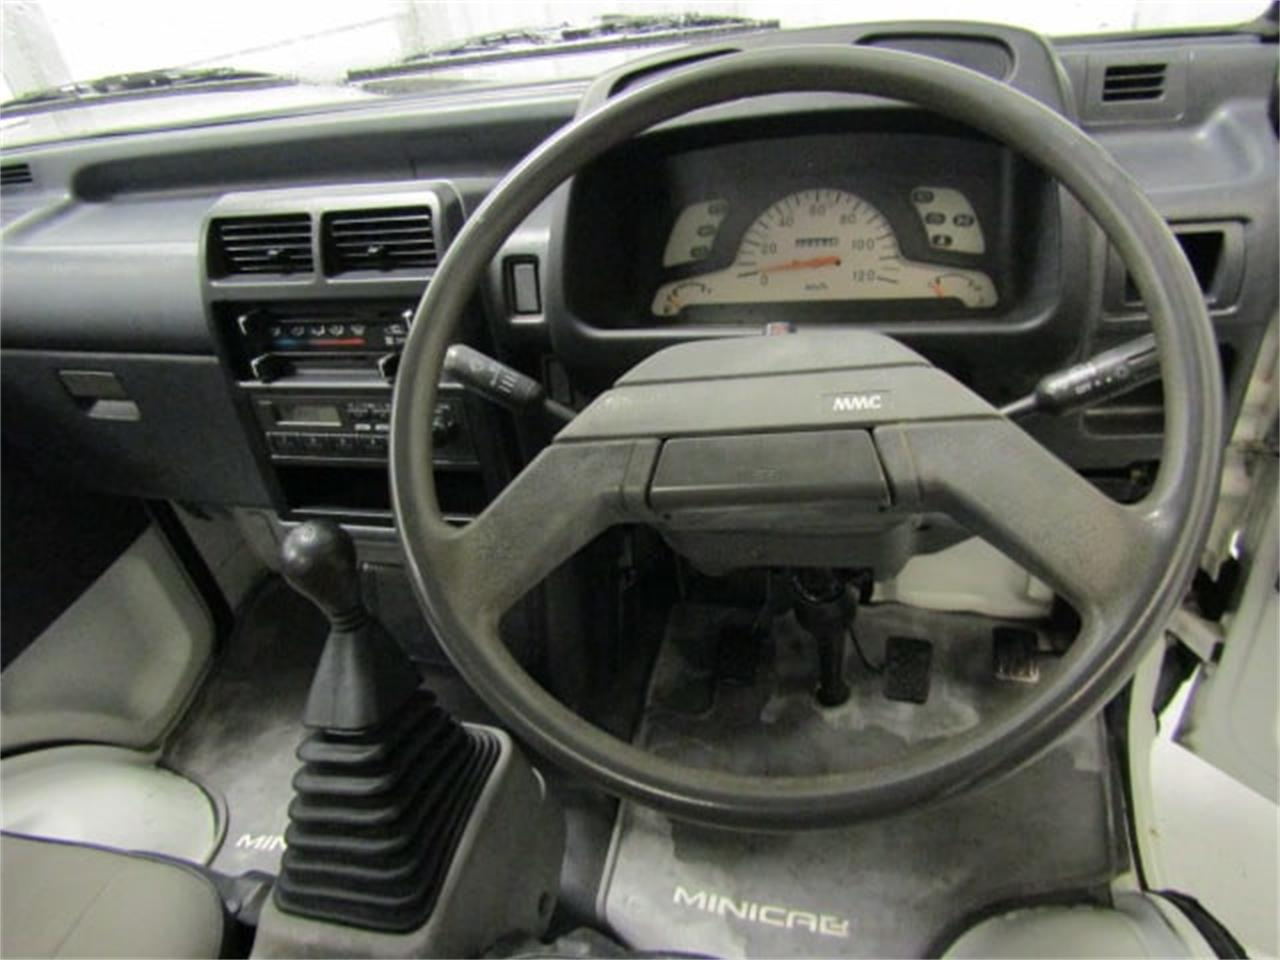 Large Picture of 1992 Mitsubishi MiniCab Offered by Duncan Imports & Classic Cars - L2SP